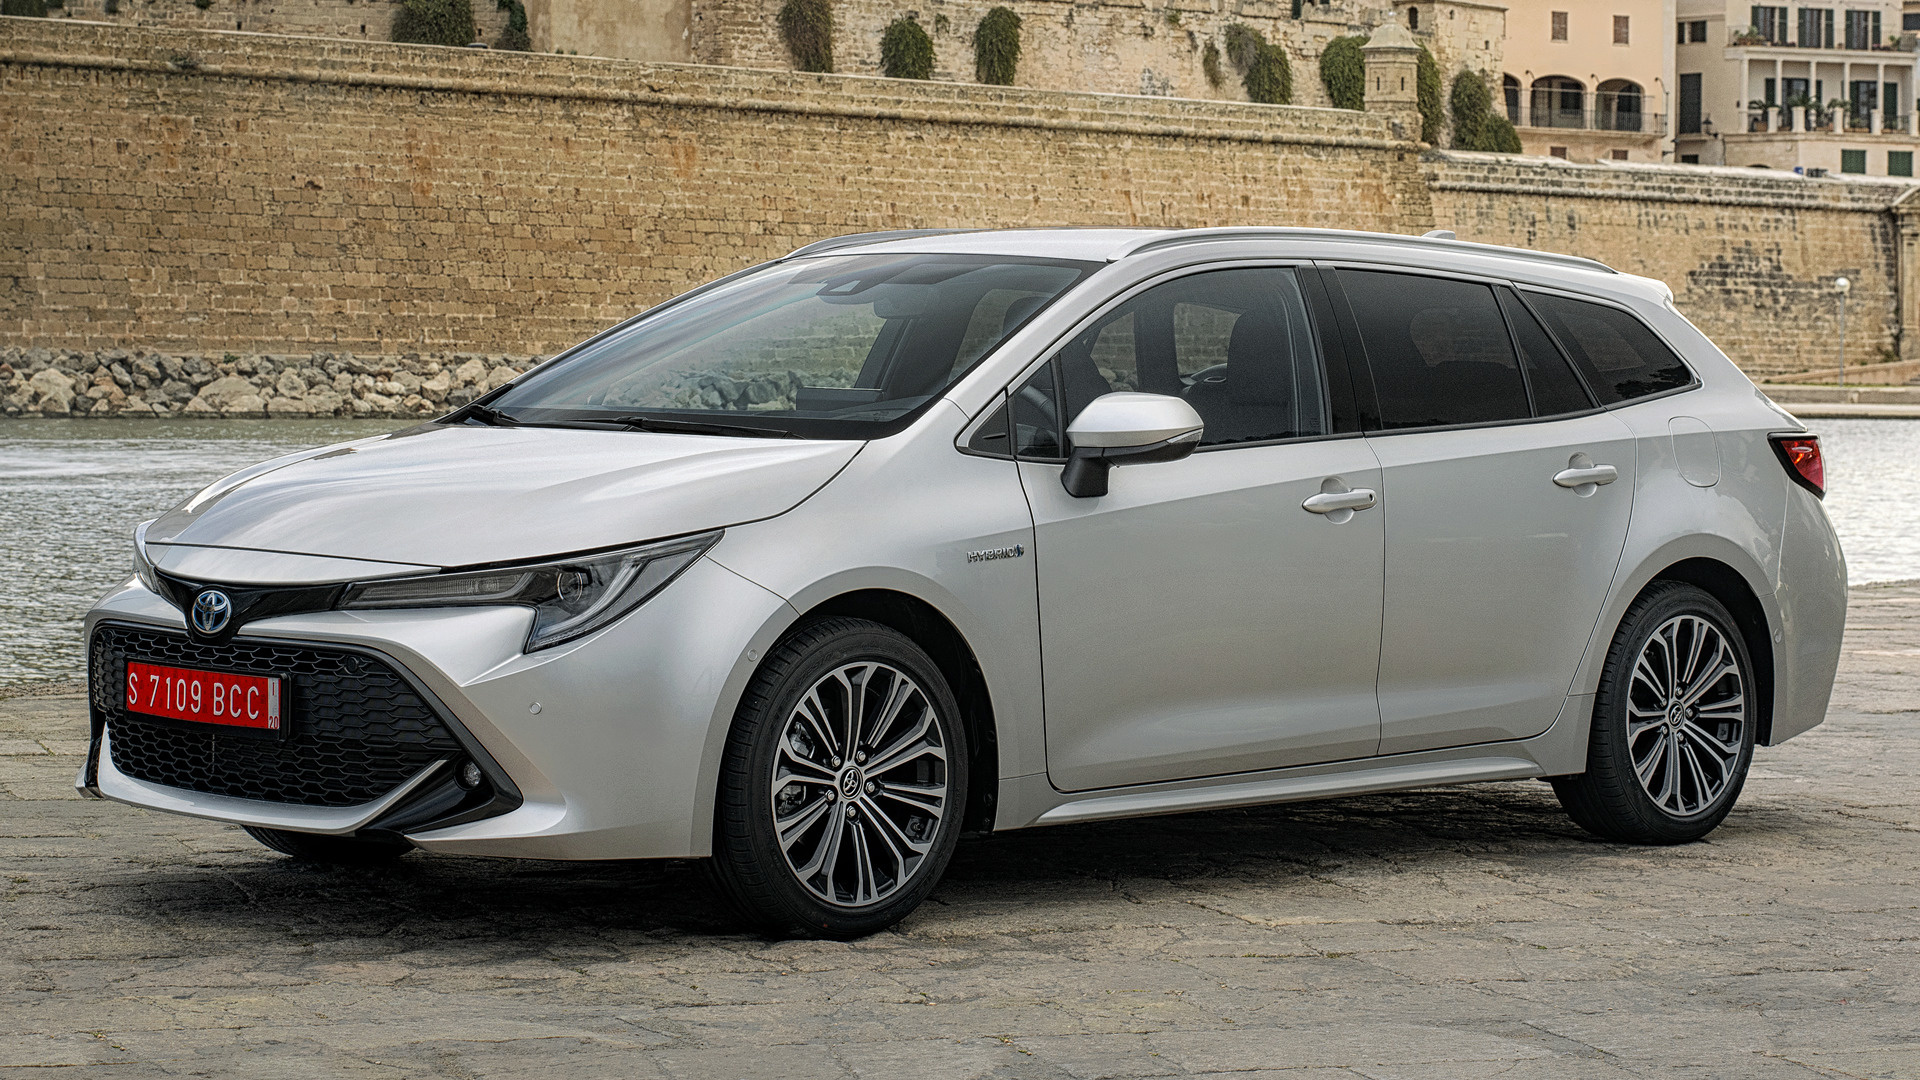 2019 toyota corolla touring sports hybrid wallpapers and. Black Bedroom Furniture Sets. Home Design Ideas